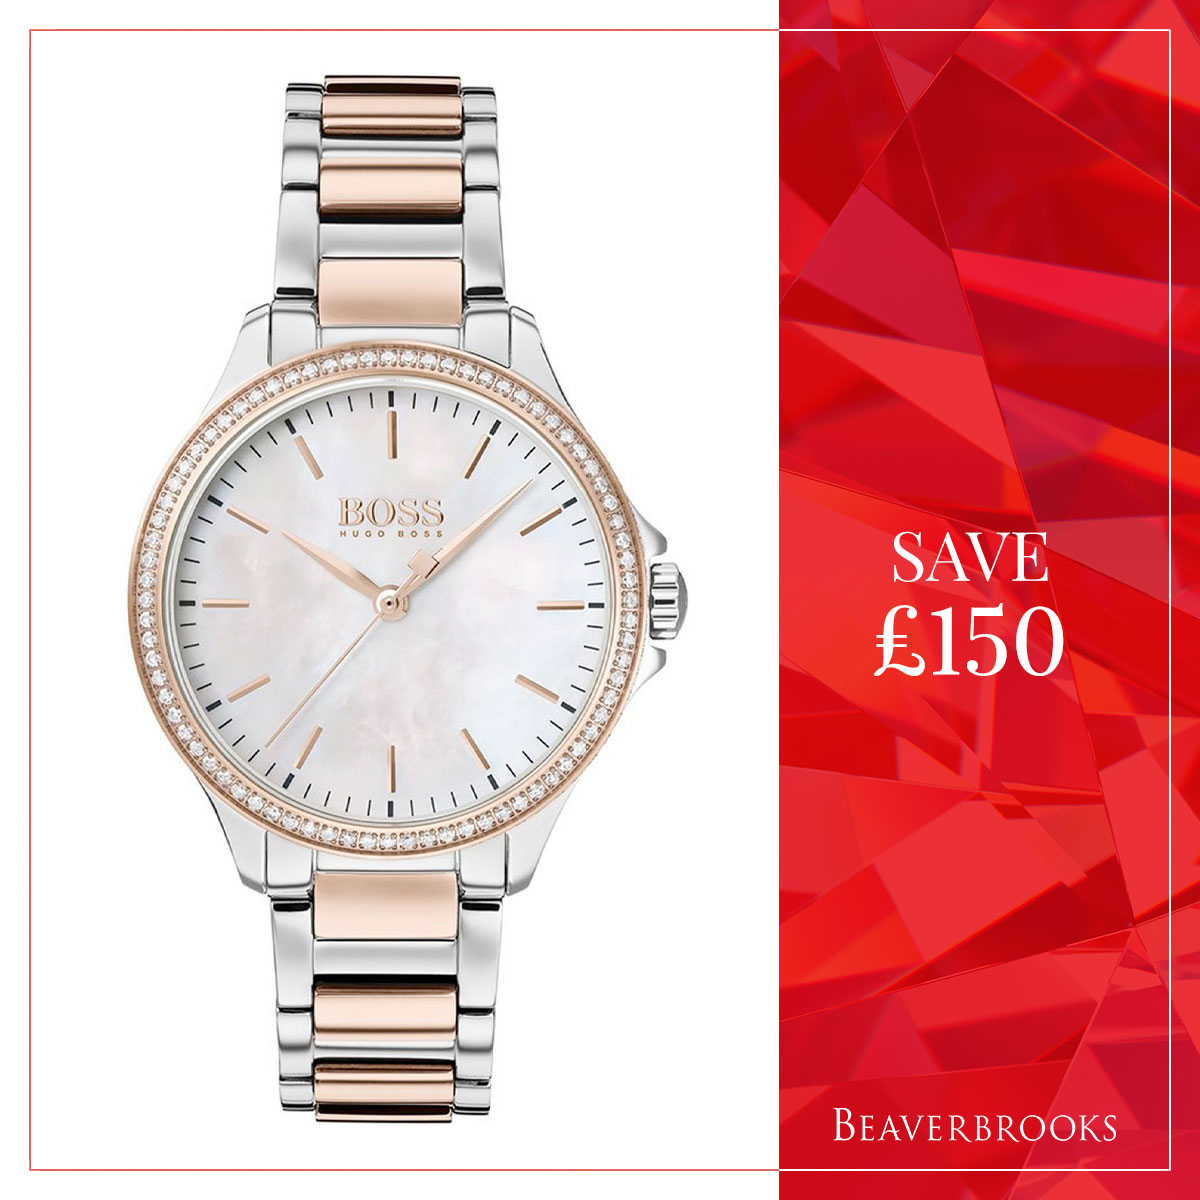 Hugo Boss Watch in the Beaverbrooks sale